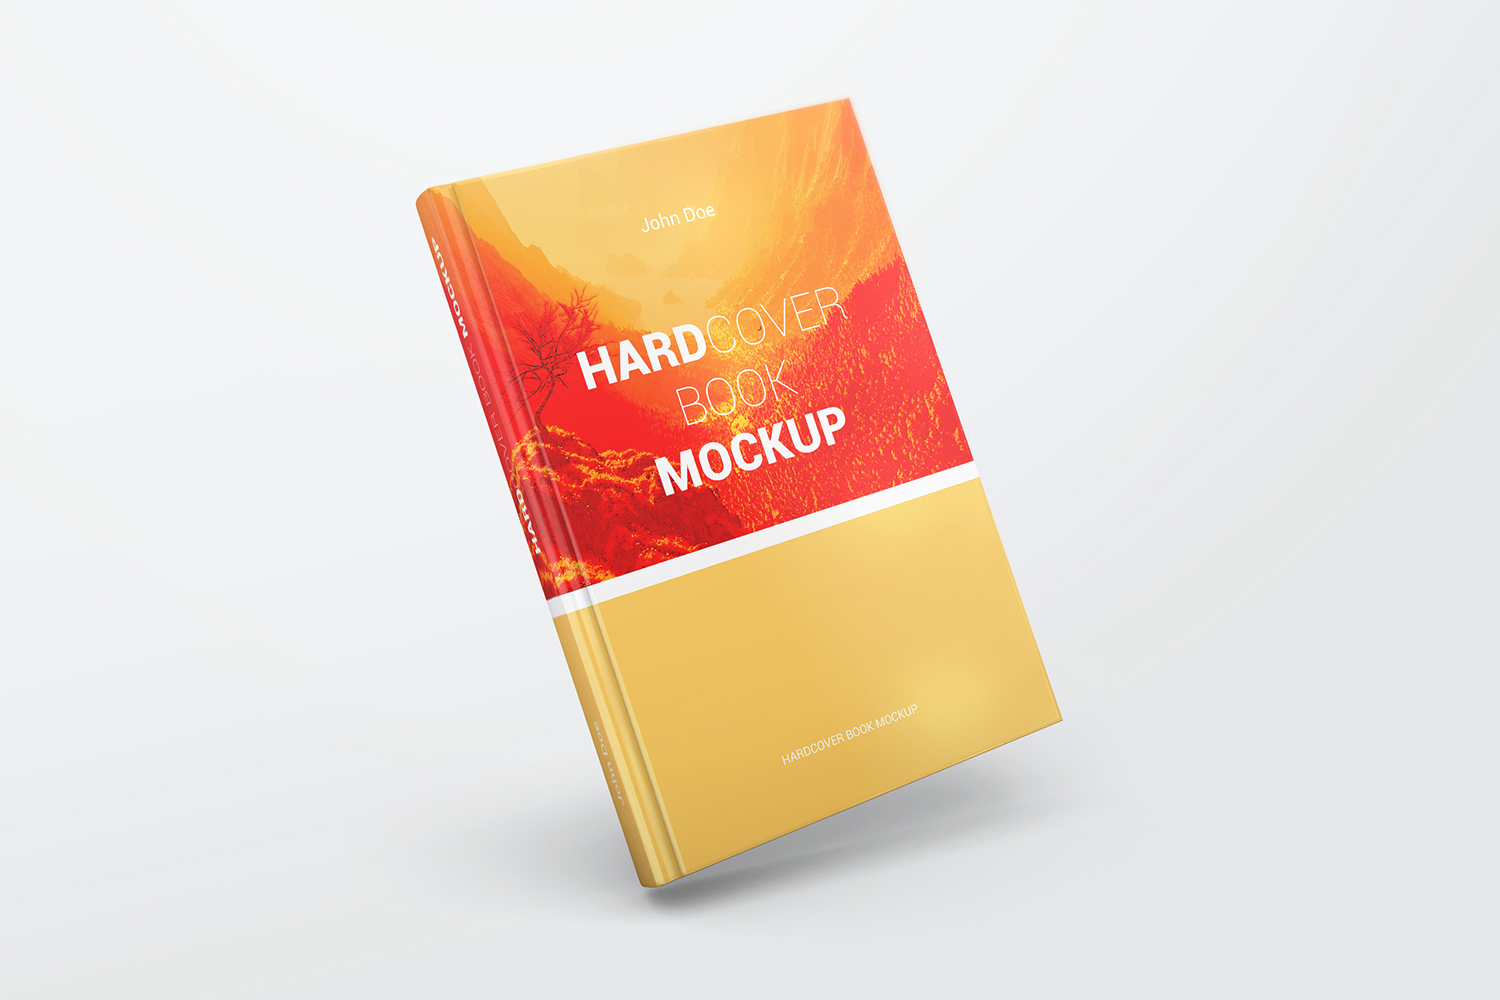 Hardcover Book Mockups example image 7